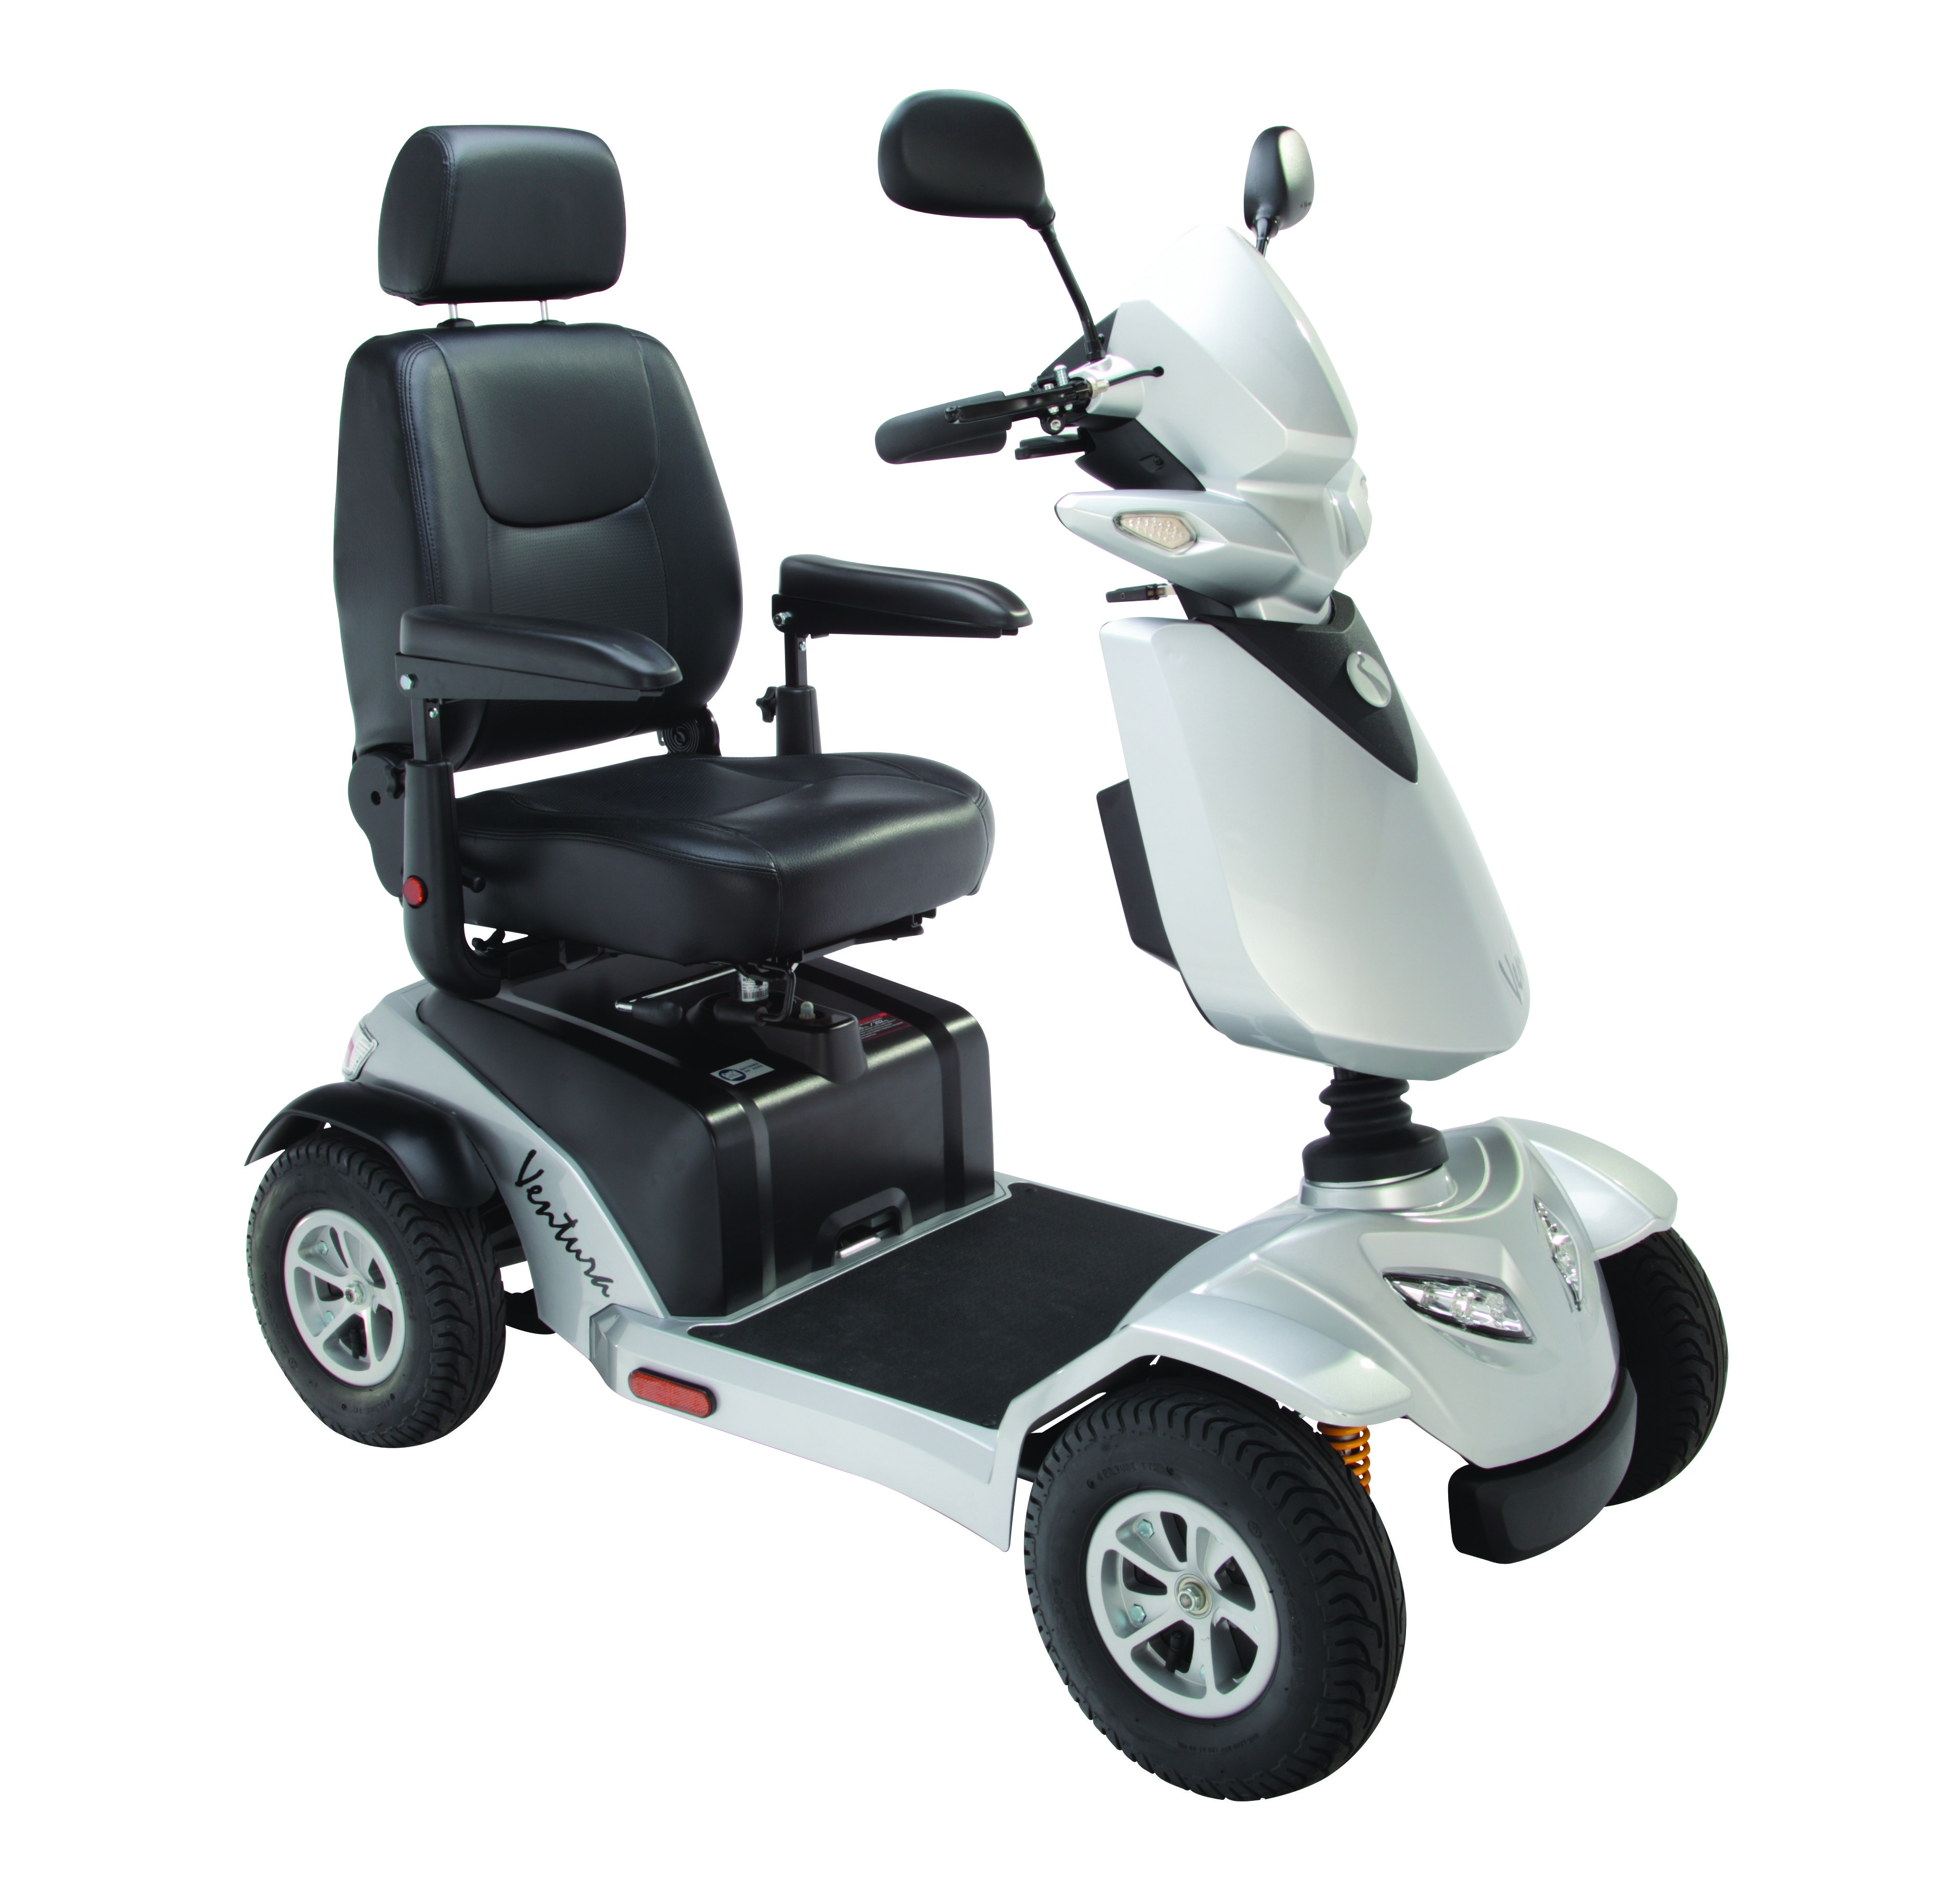 The Ventura Electric Mobility Scooter offers a fully